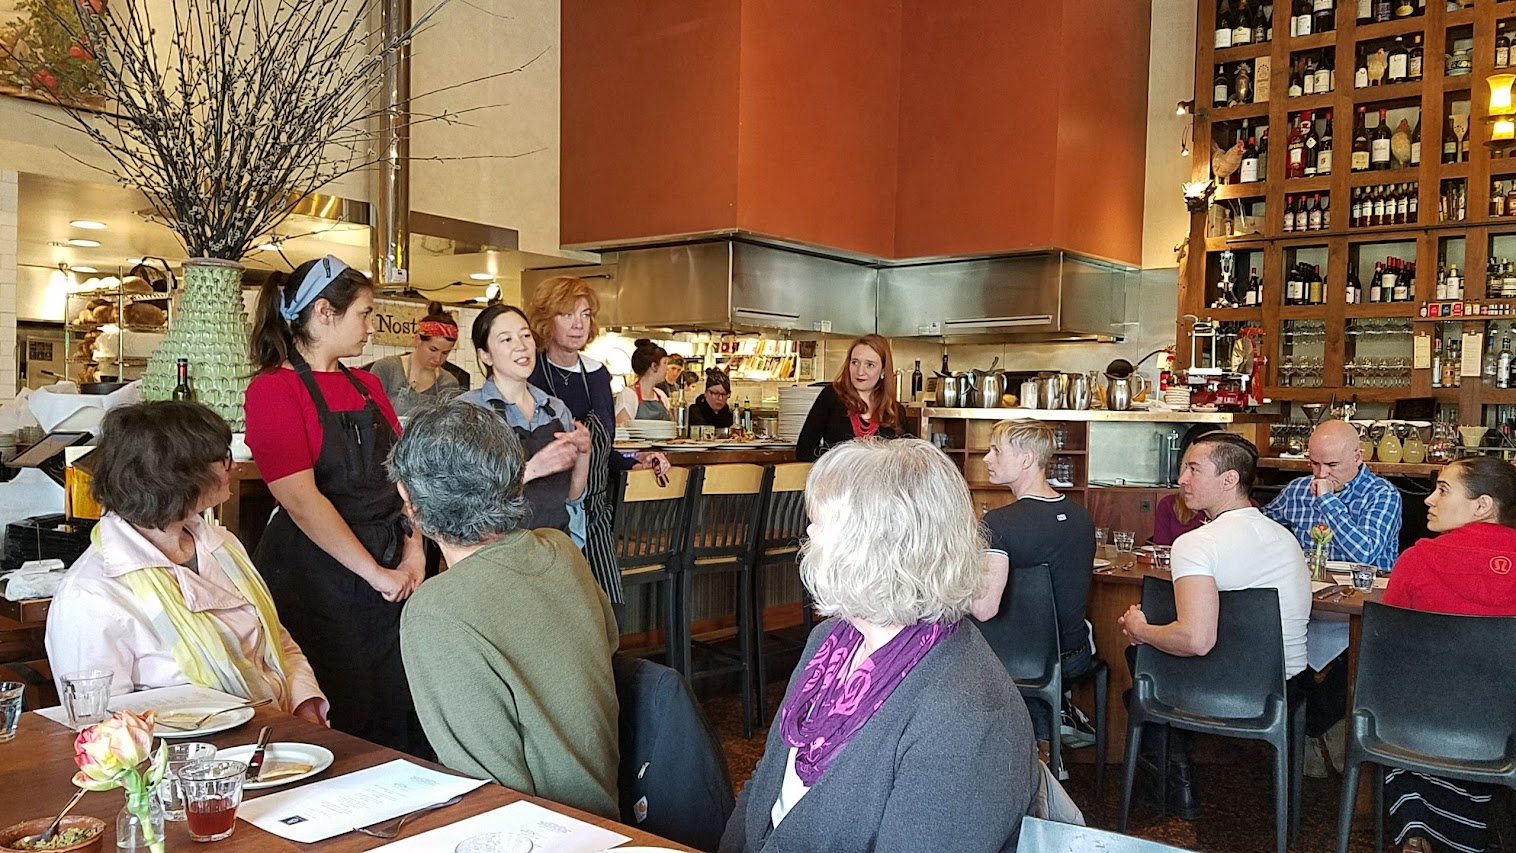 Breaking Bread with Meadowlark PDX and Nostrana to benefit the Cascade AIDs Project (CAP) with a luncheon featuring Iranian cuisine